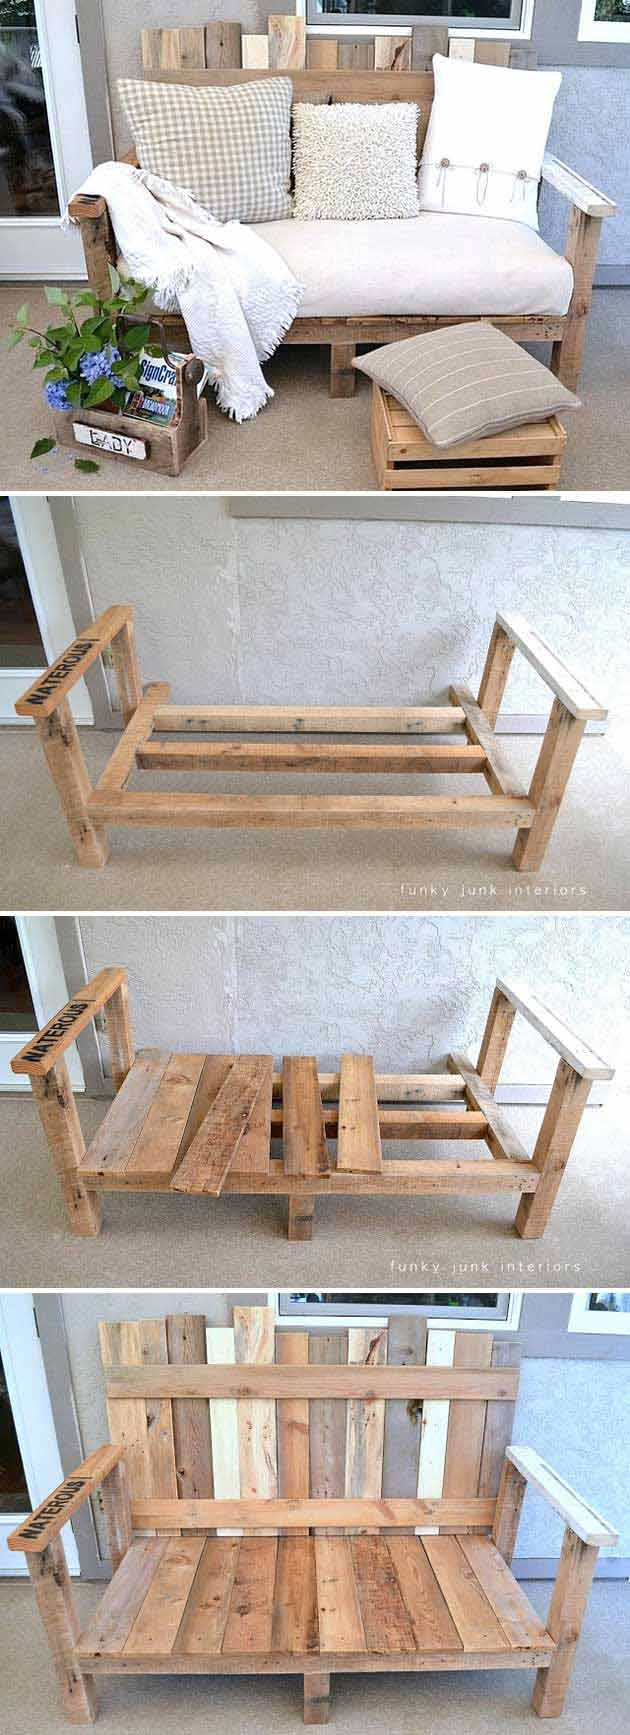 20 insanely cool diy yard and patio furniture for Cool homemade furniture